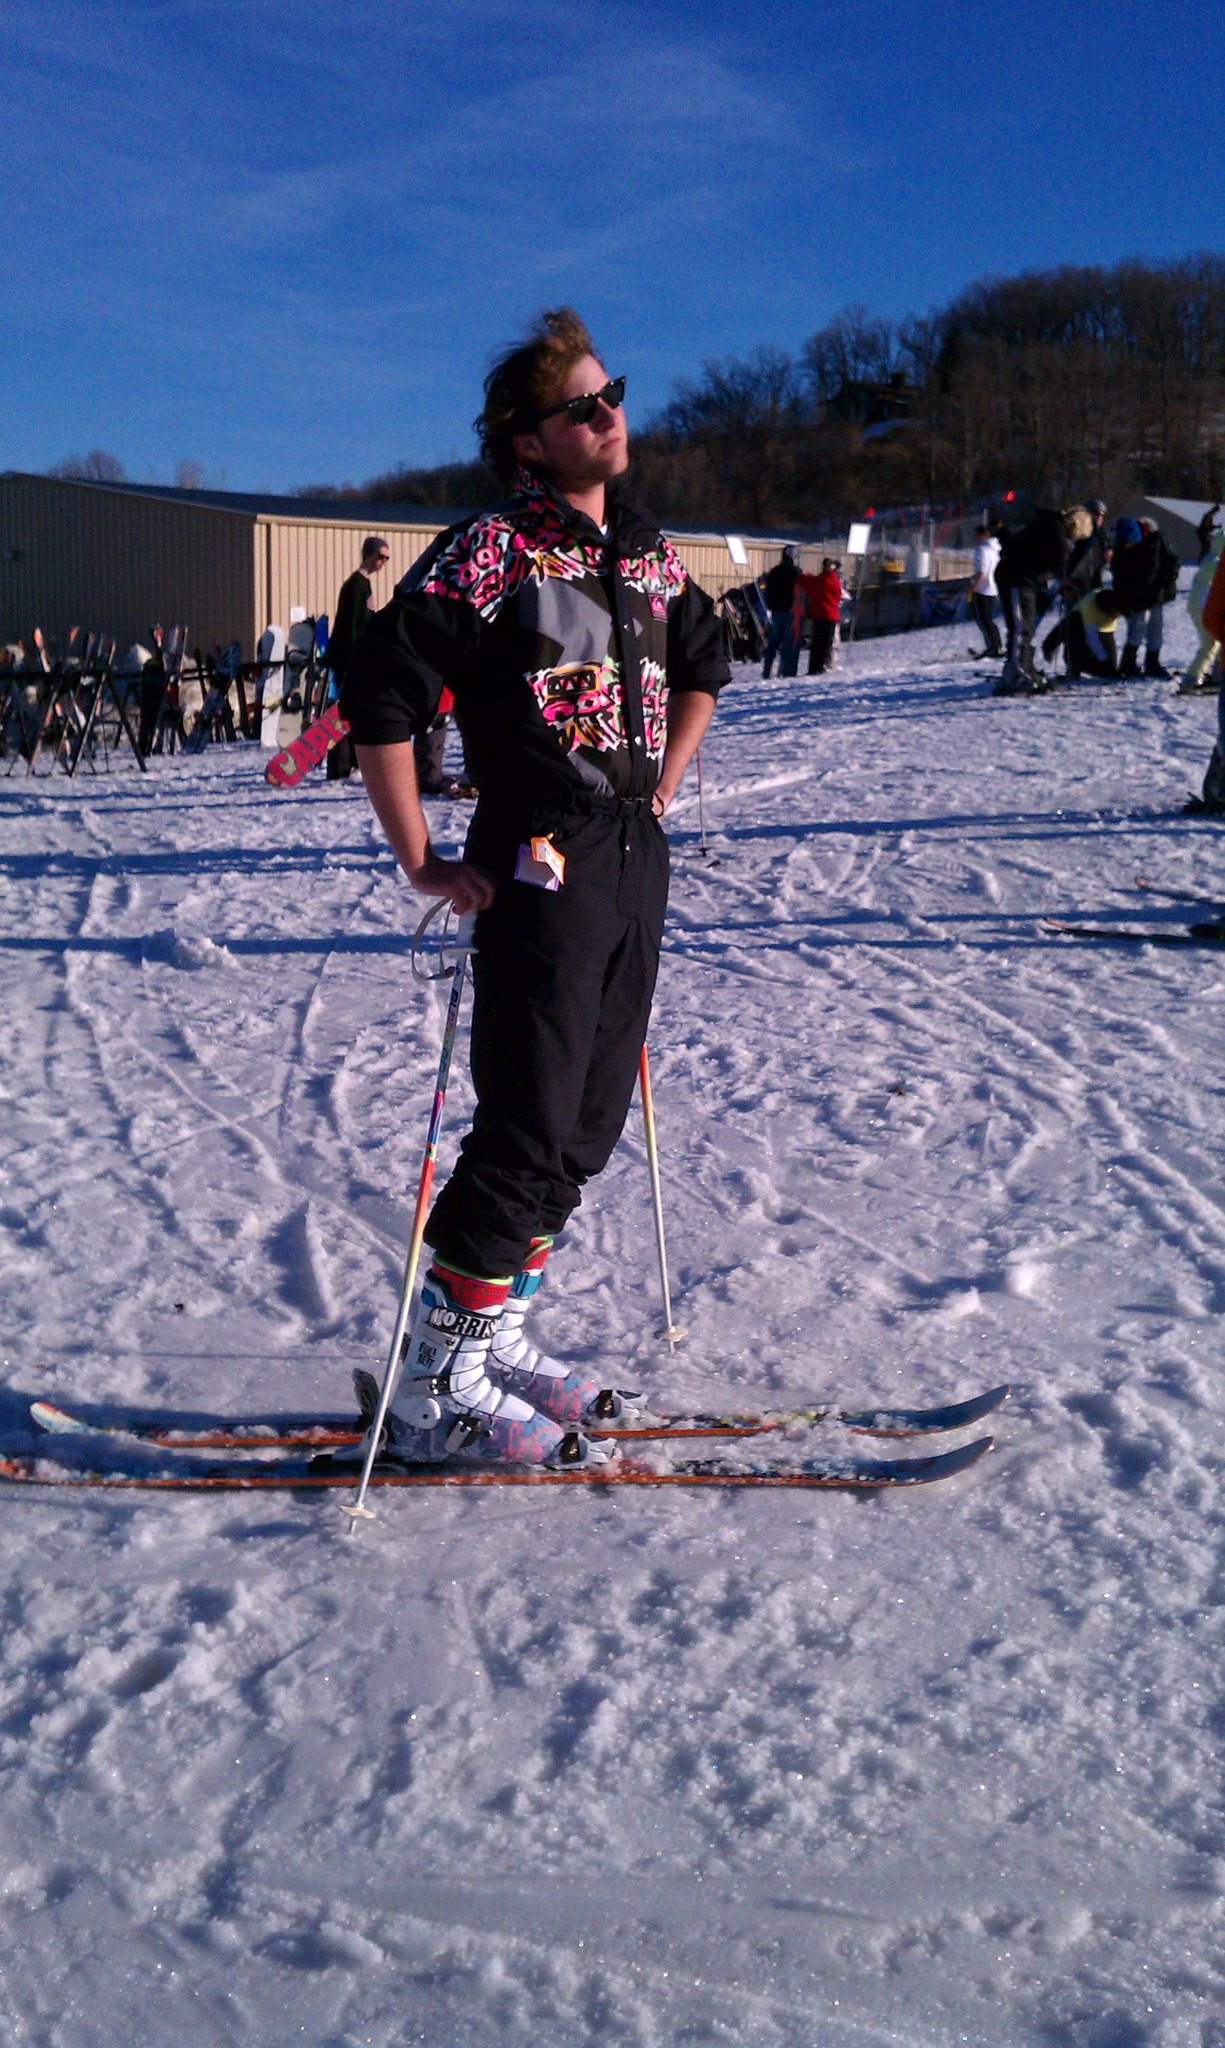 Epic shot of me in my gaper suit